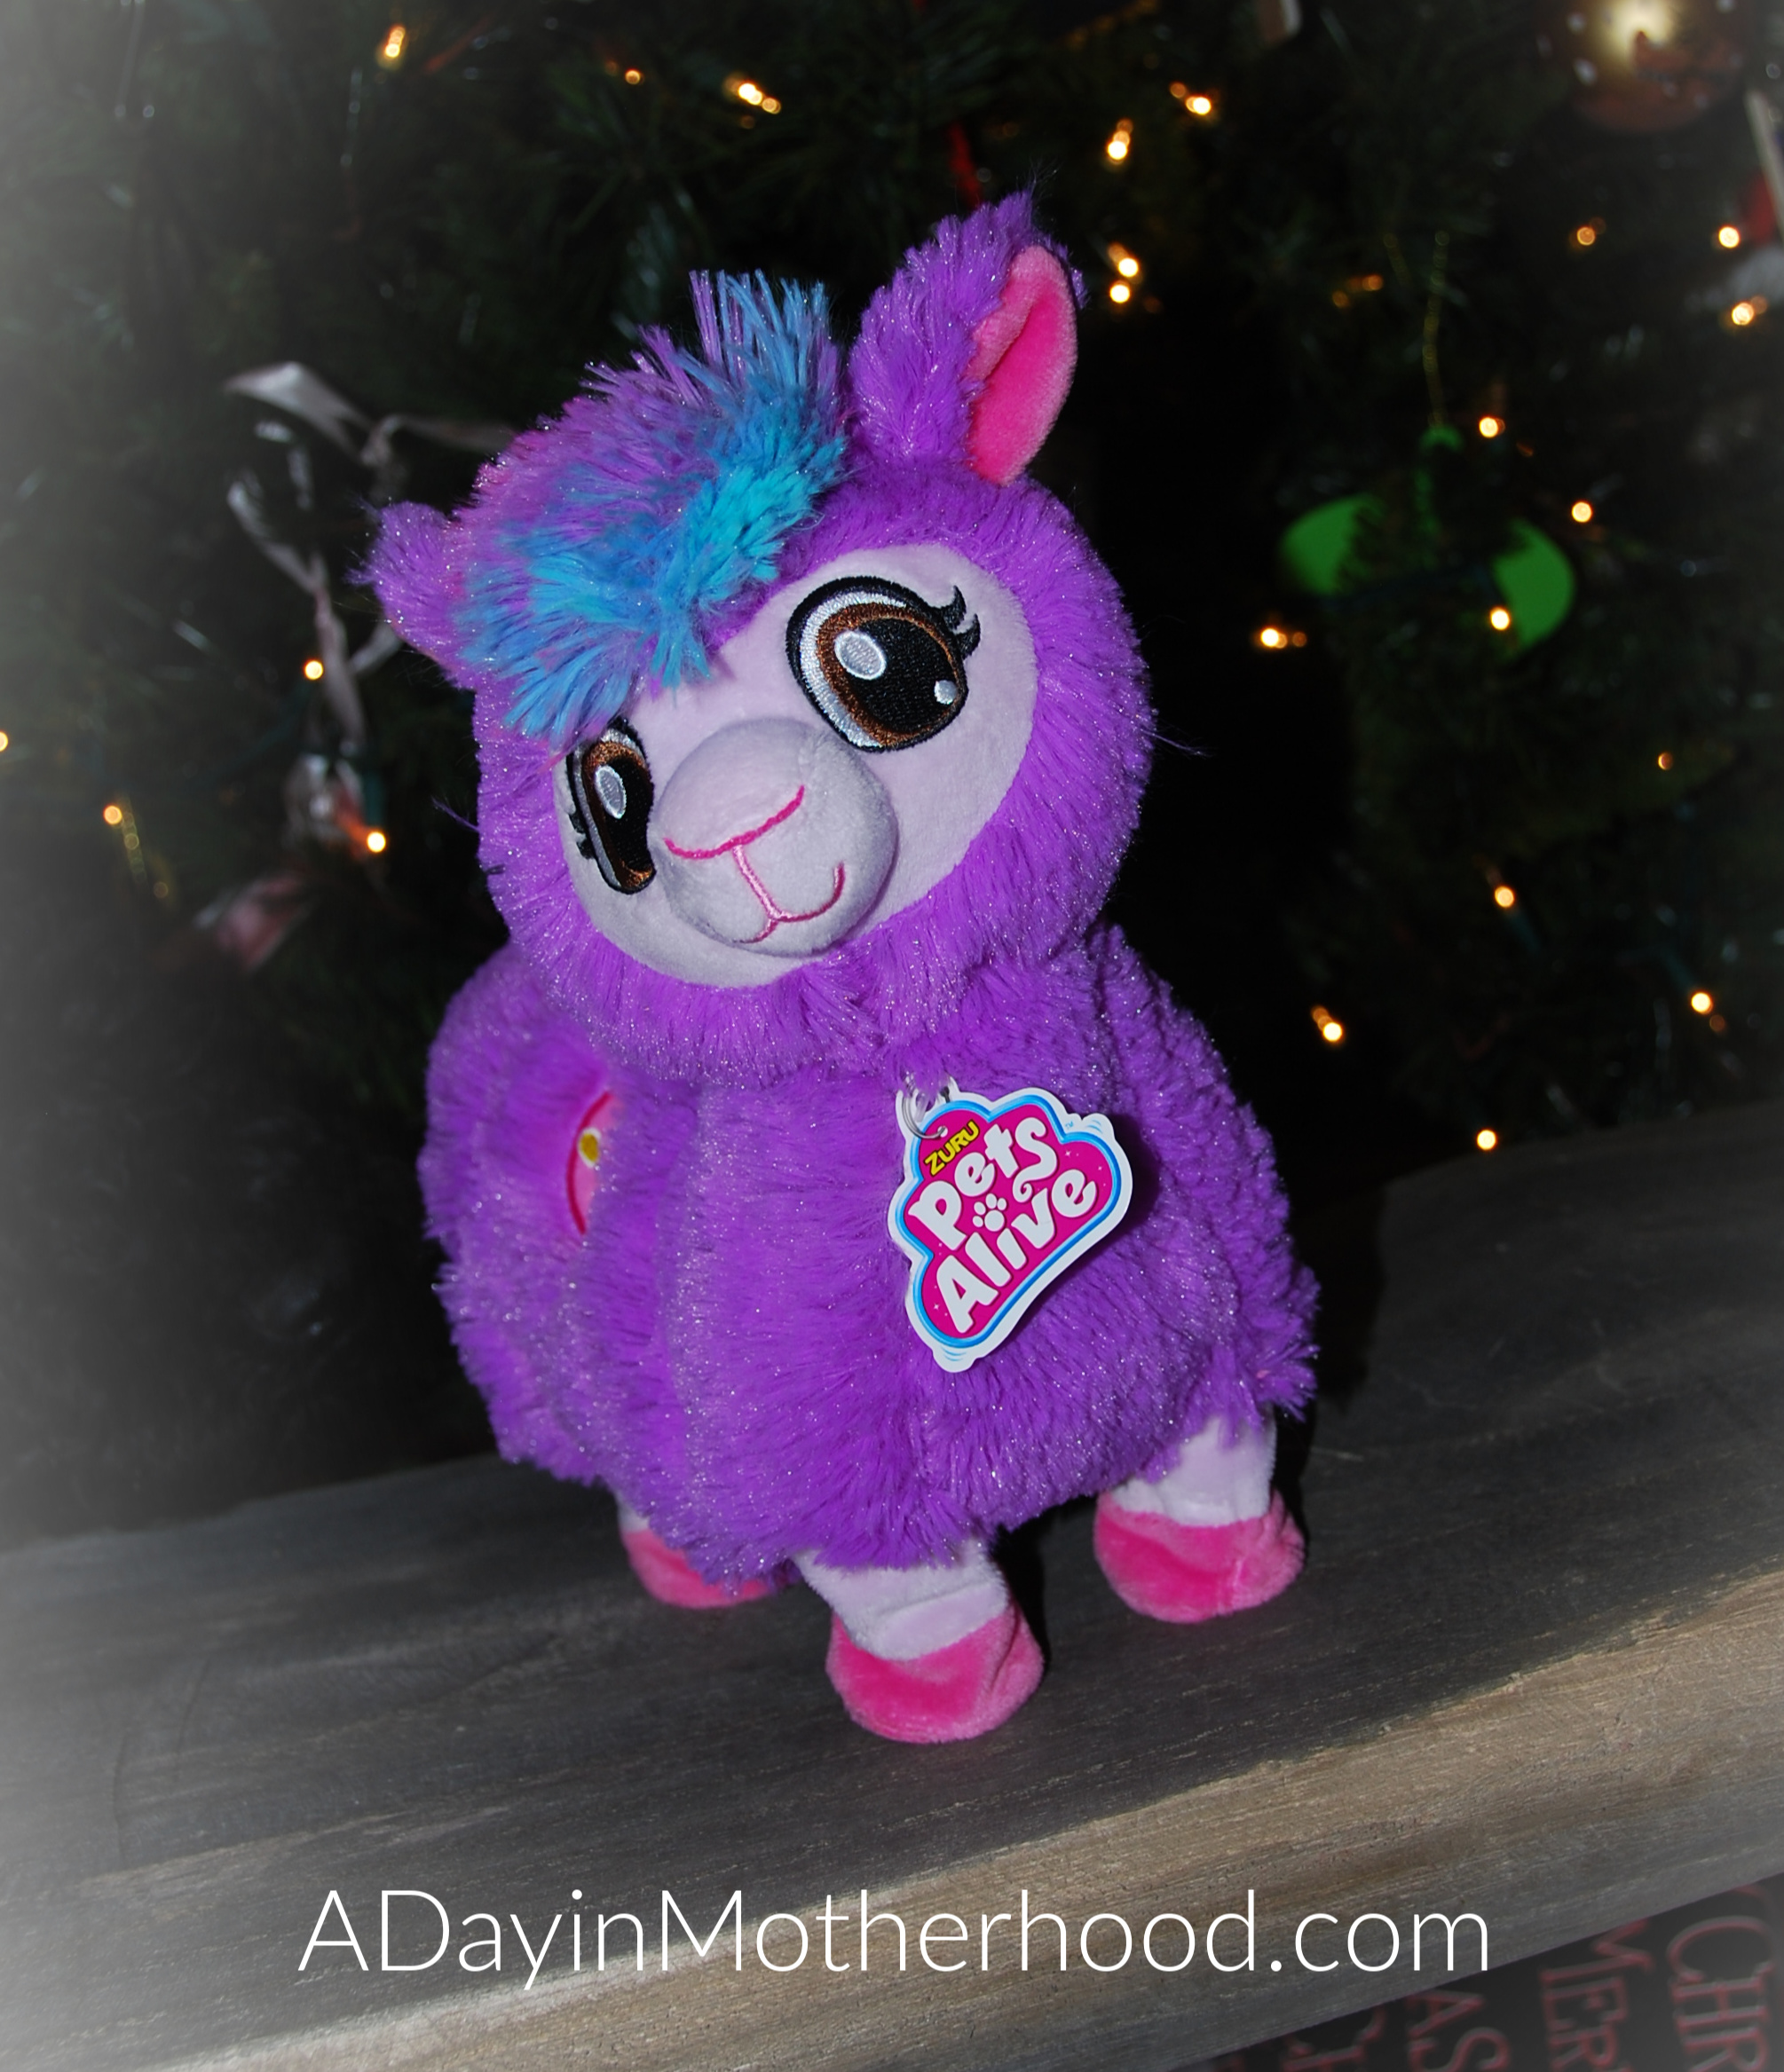 Gifts That Will Add Little Sparkle to Your Tweens Life-photo of a dancing llama on ADayinMotherhood.com